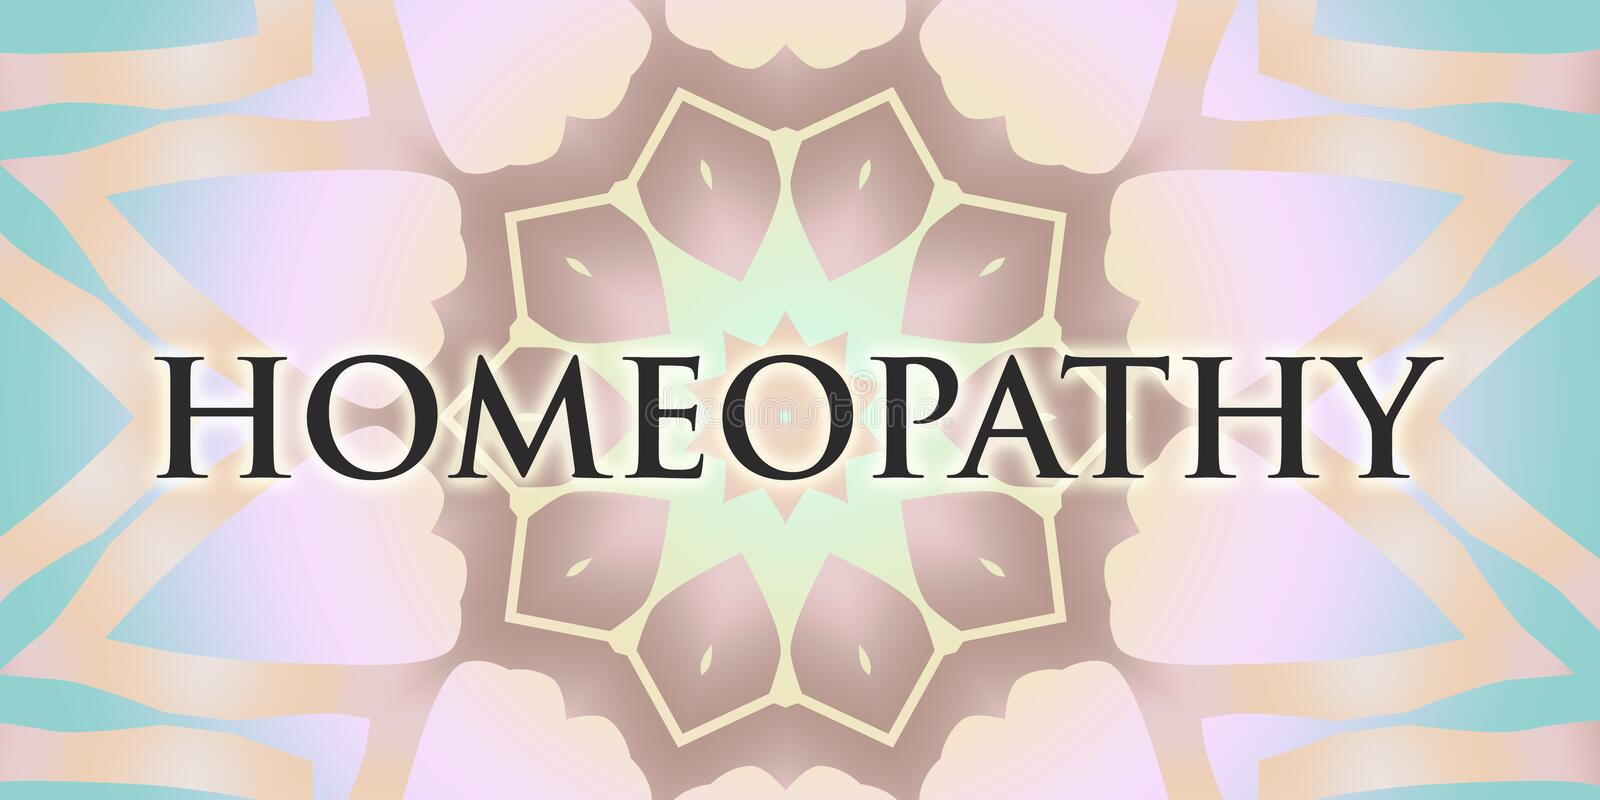 Mandala da homeopatia foto de stock royalty free